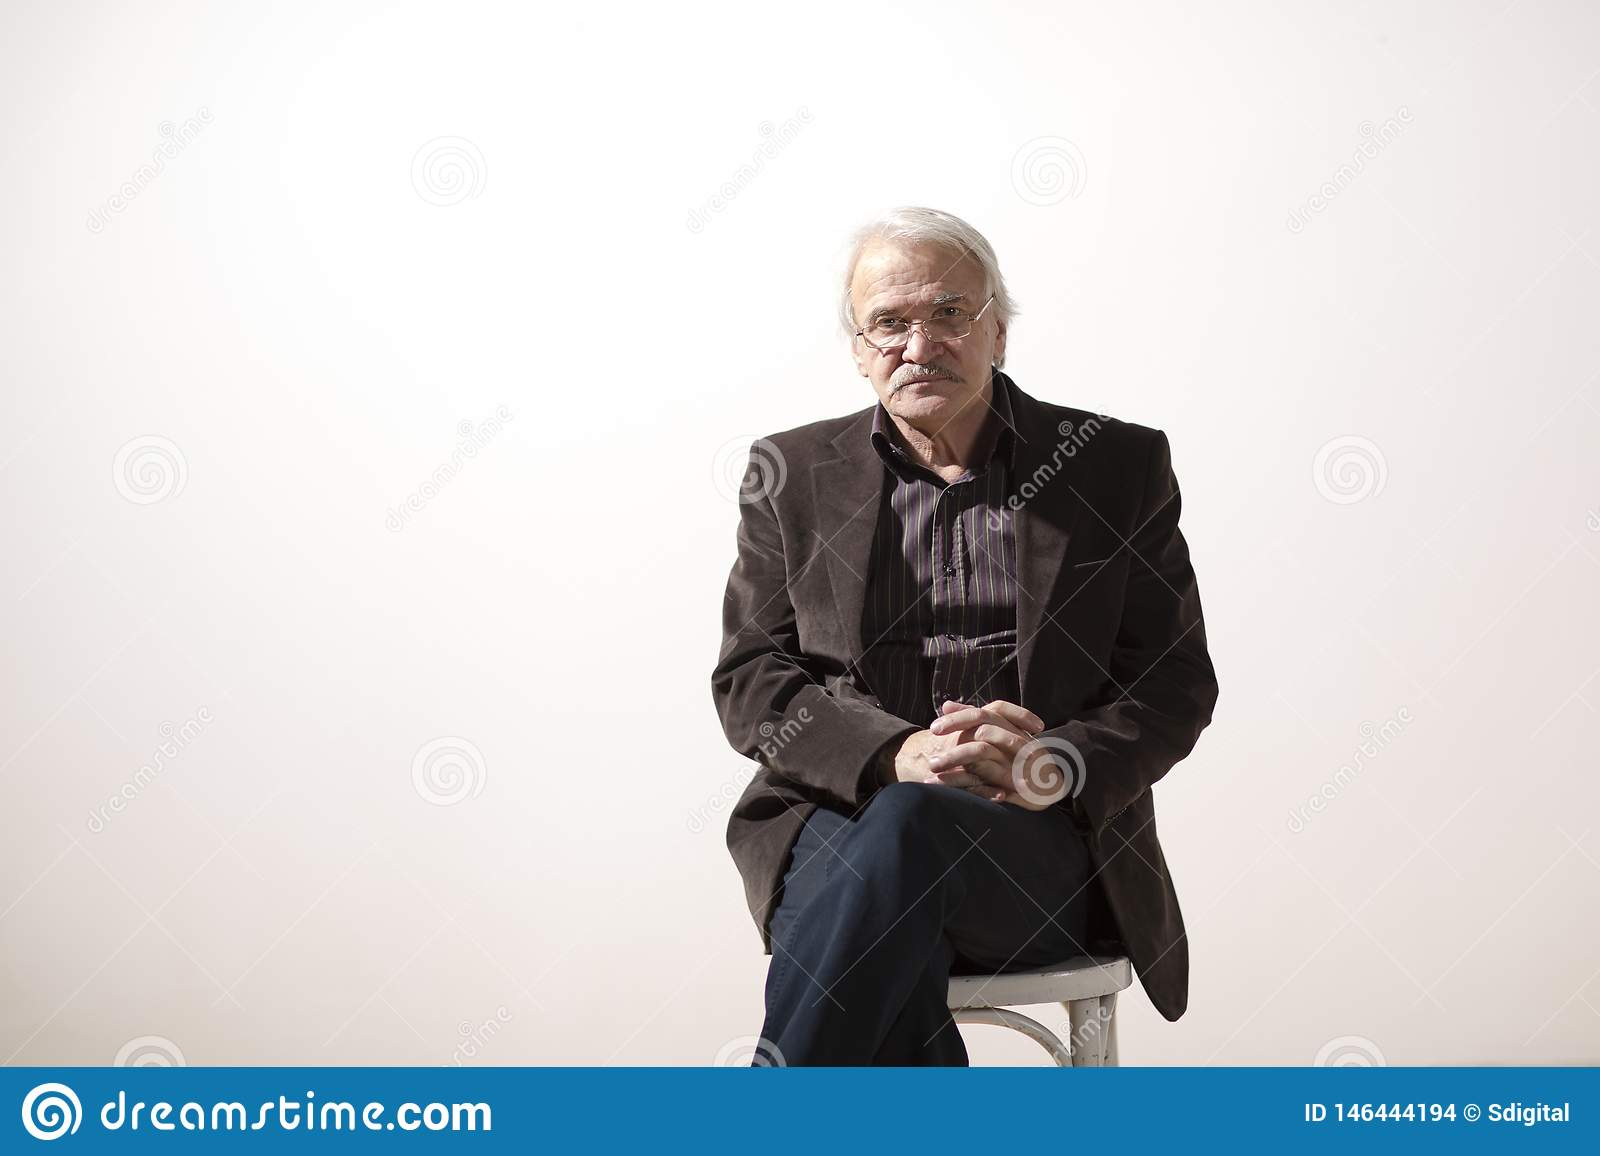 Charismatic man on a white background